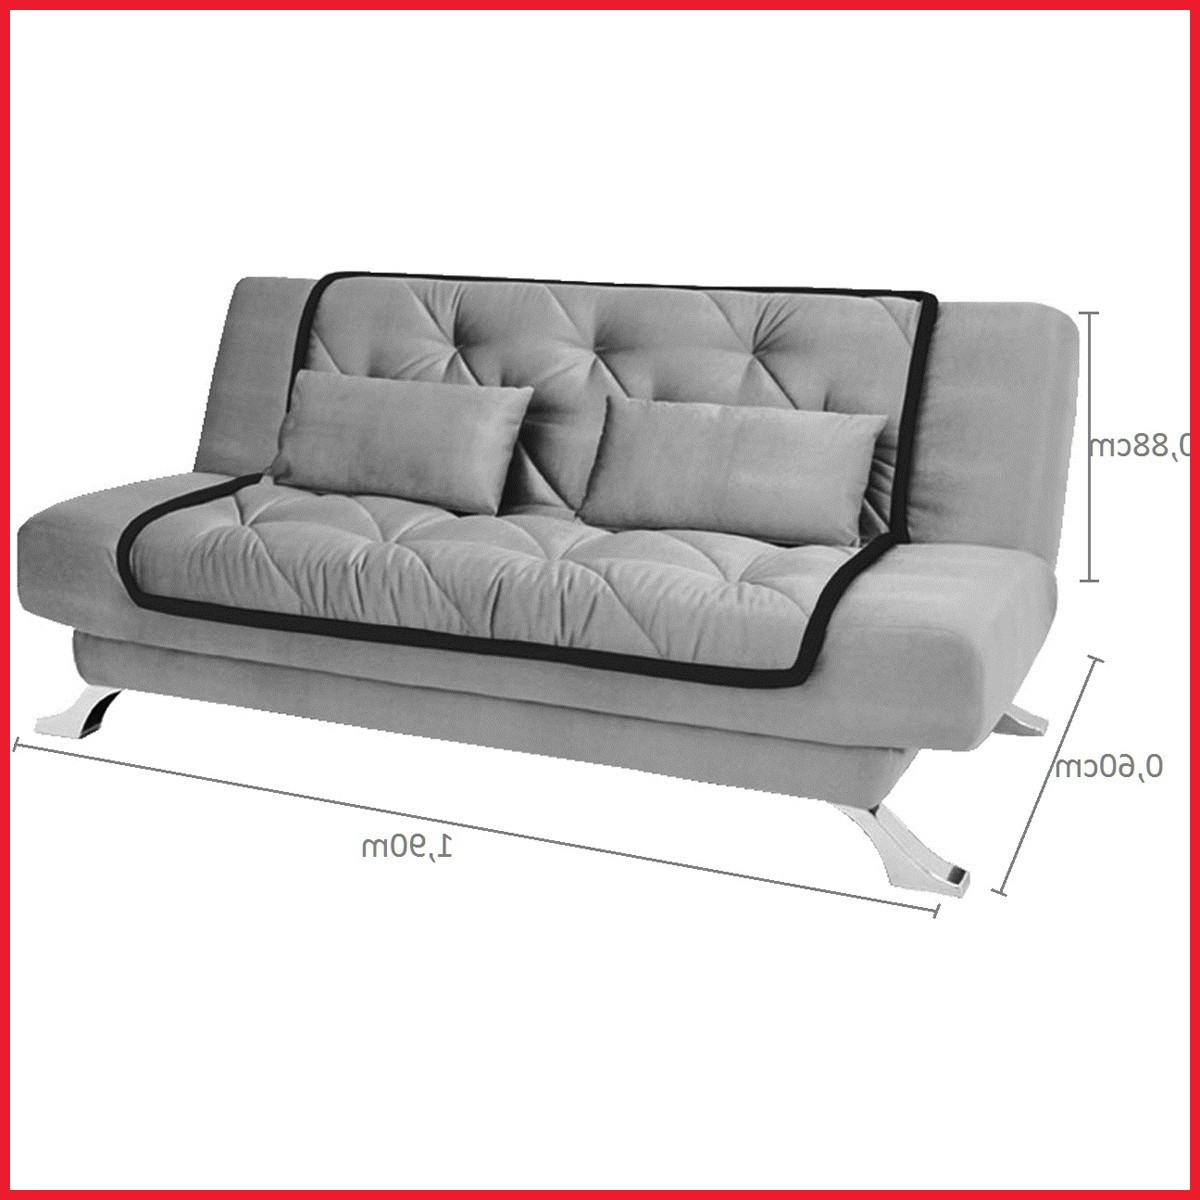 Carrefour sofas Cama 87dx Carrefour sofa Cama sofas Camas after sofas Cama Baratos